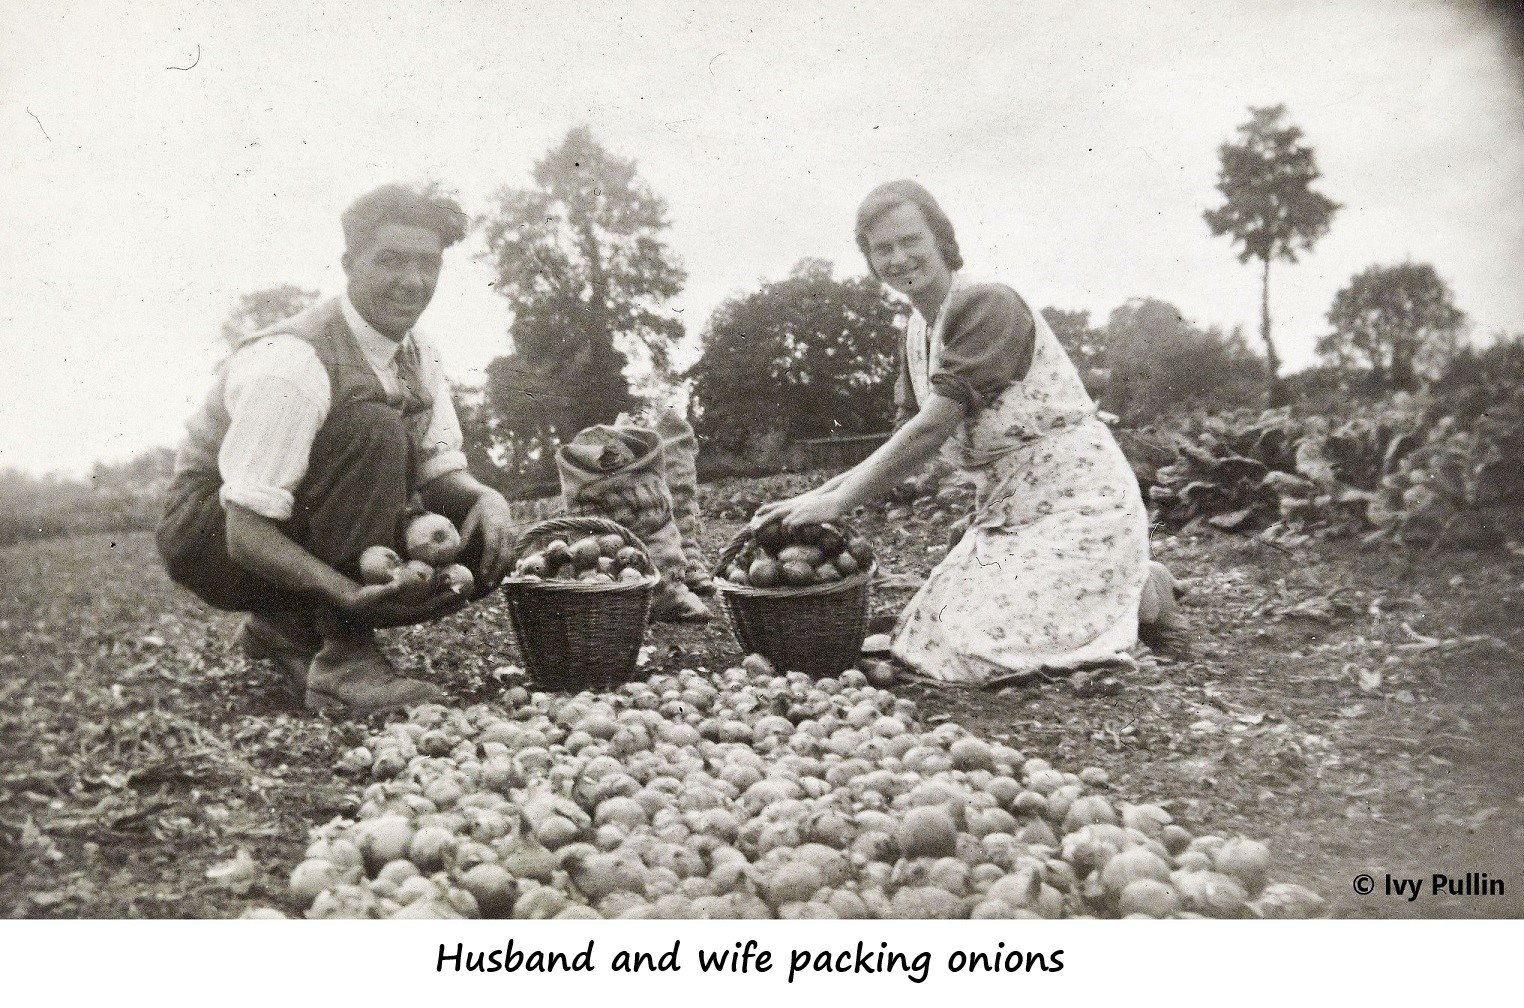 Couple packing onions